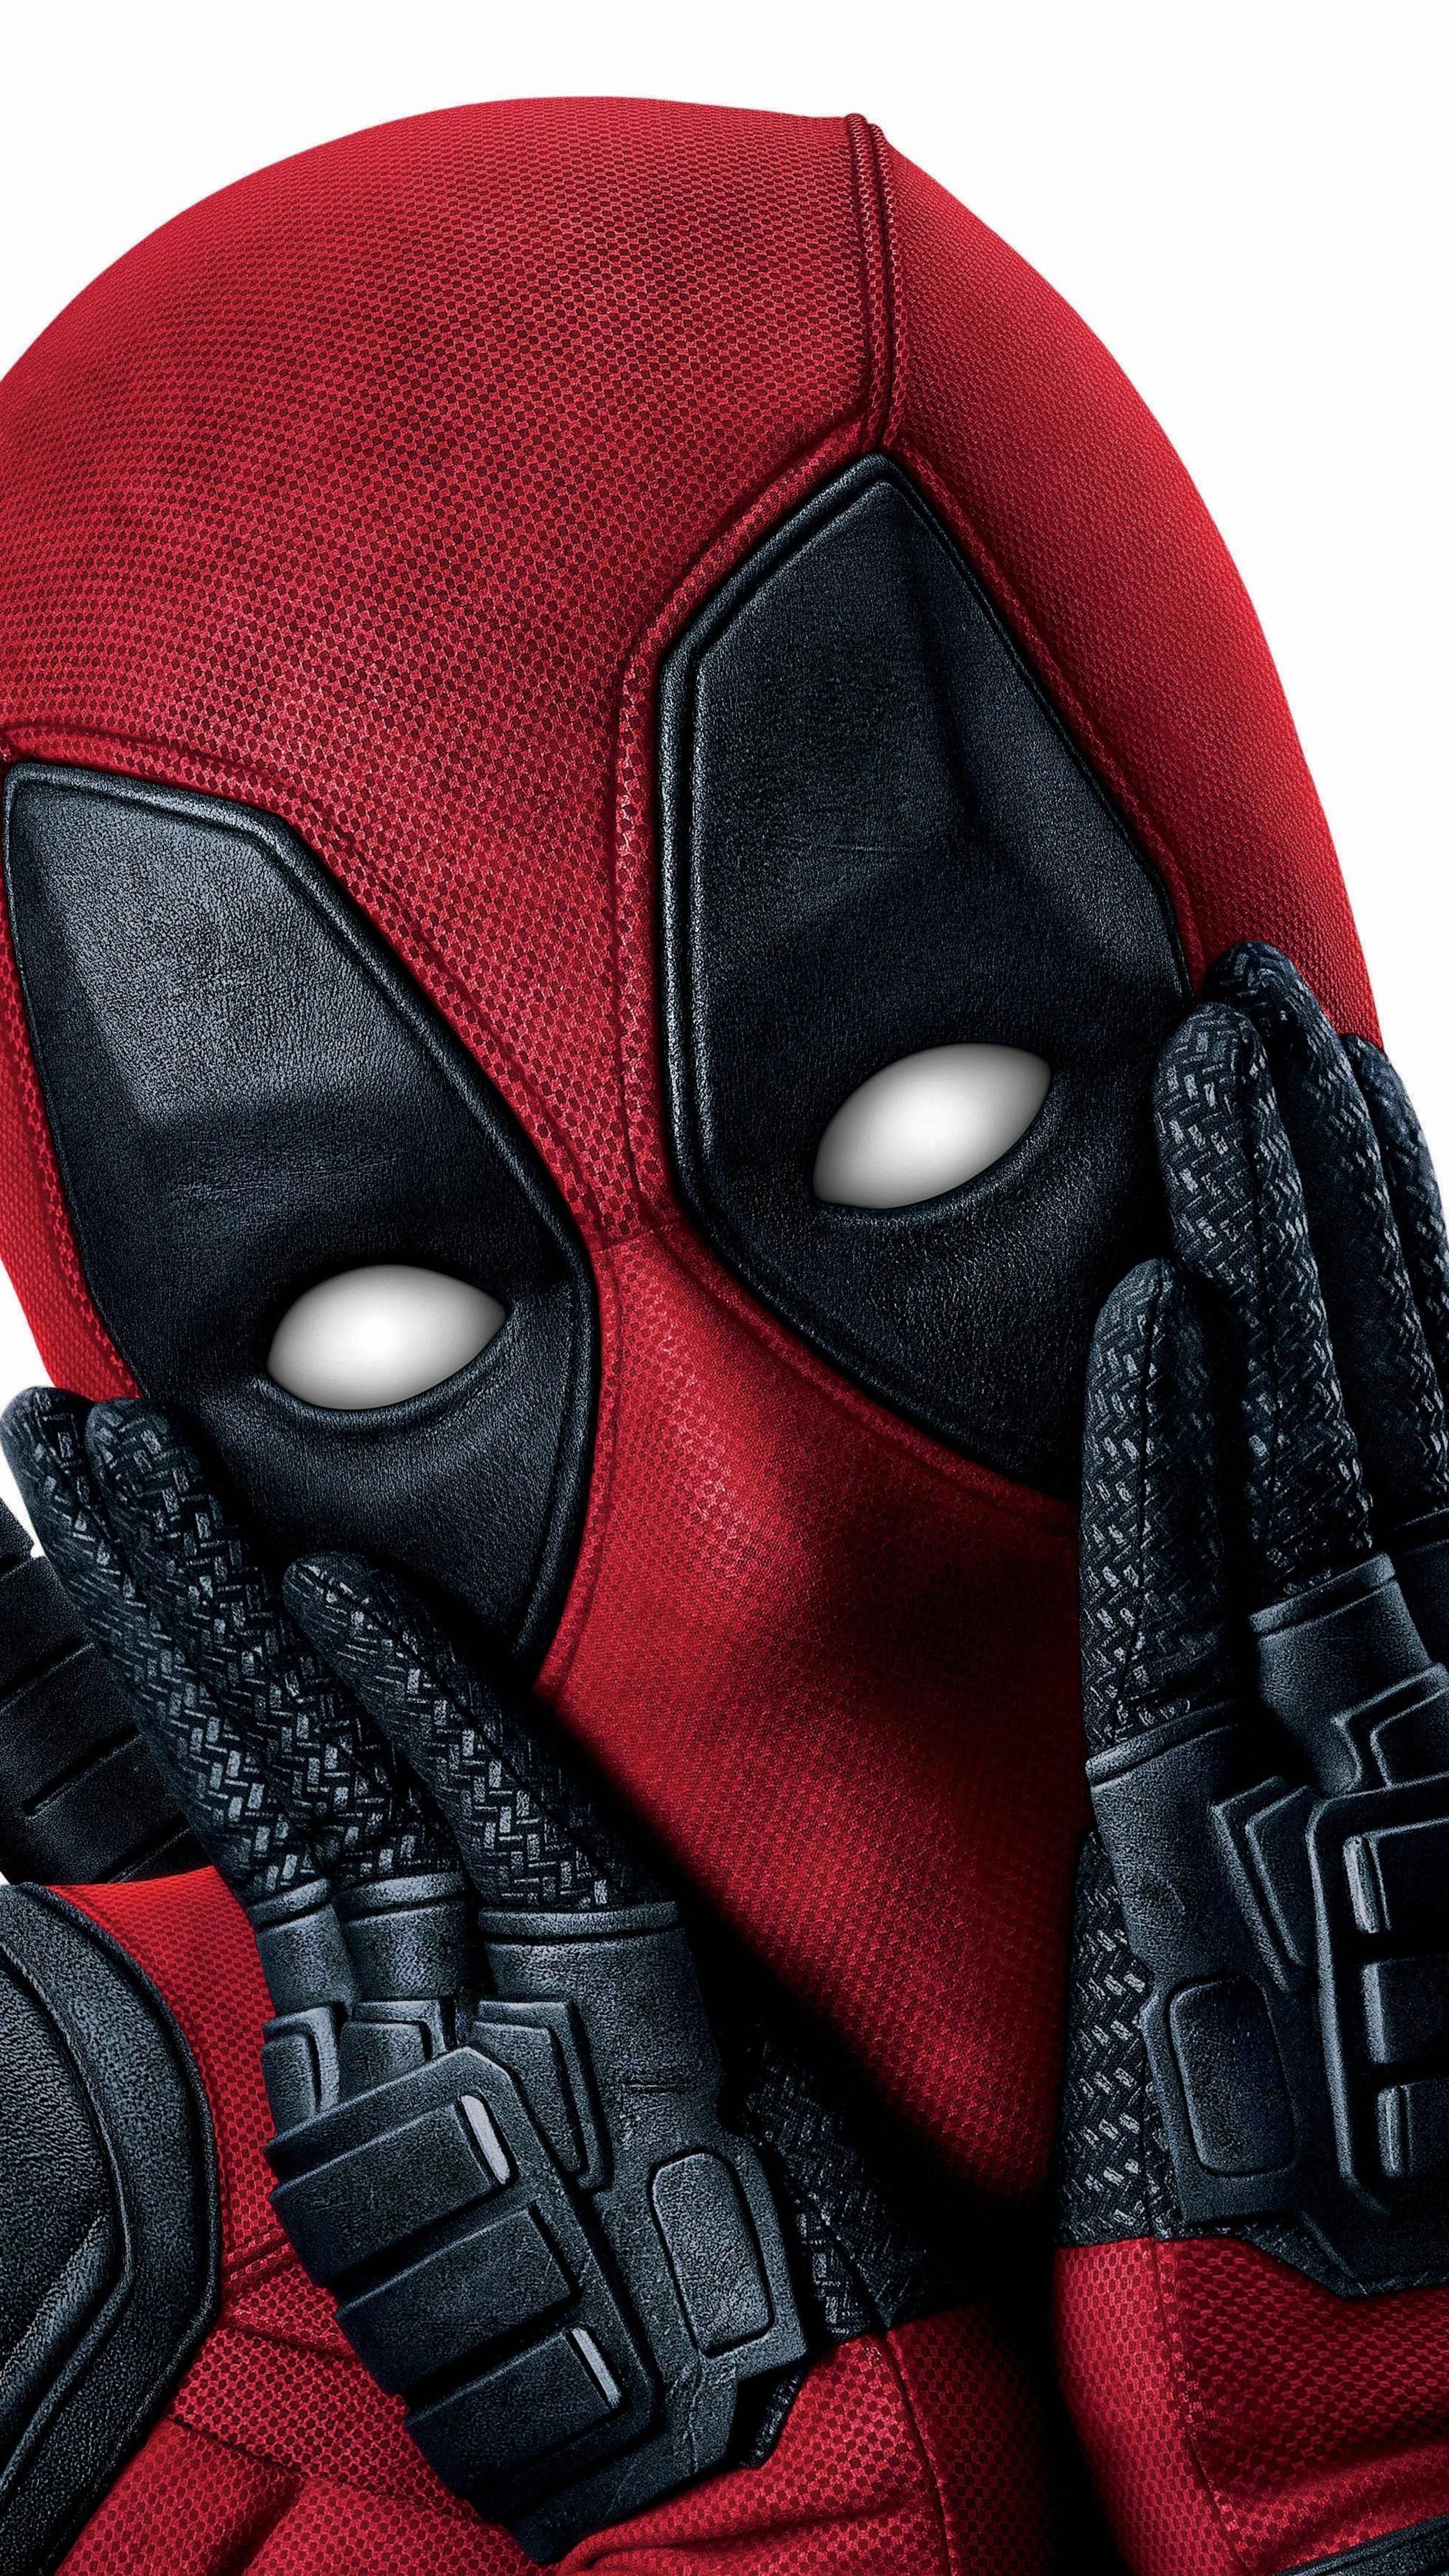 Marvel Wallpaper For Iphone From M Imgur Com Deadpool Hd Wallpaper Deadpool Wallpaper Deadpool Wallpaper Iphone Iphone 6 lock screen iphone 6 deadpool